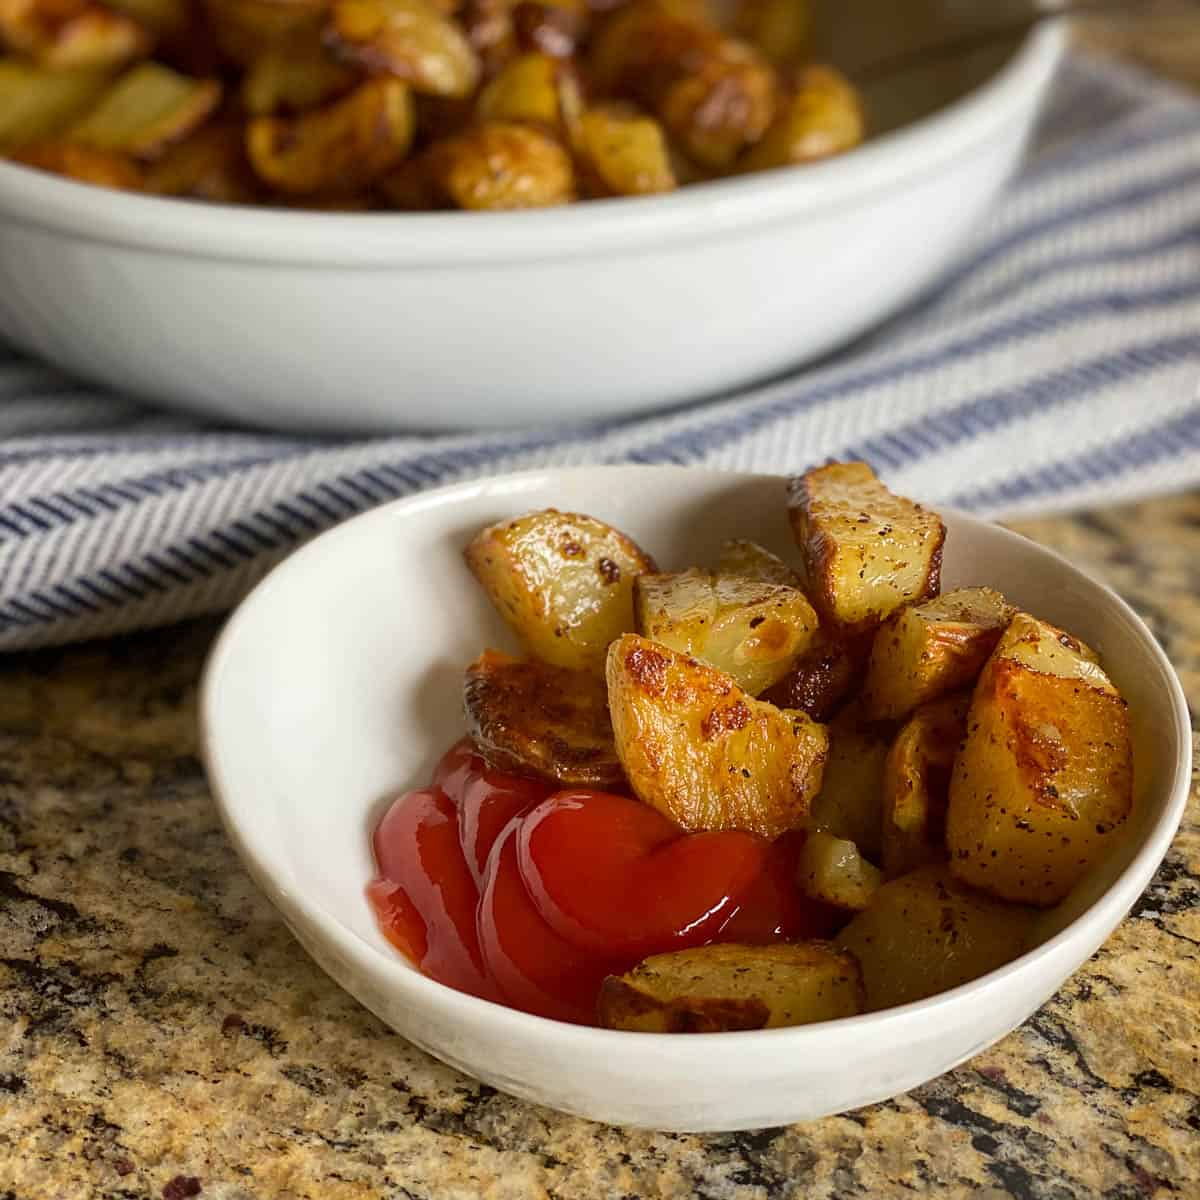 Crispy Oven Roasted Potatoes with Ketchup.